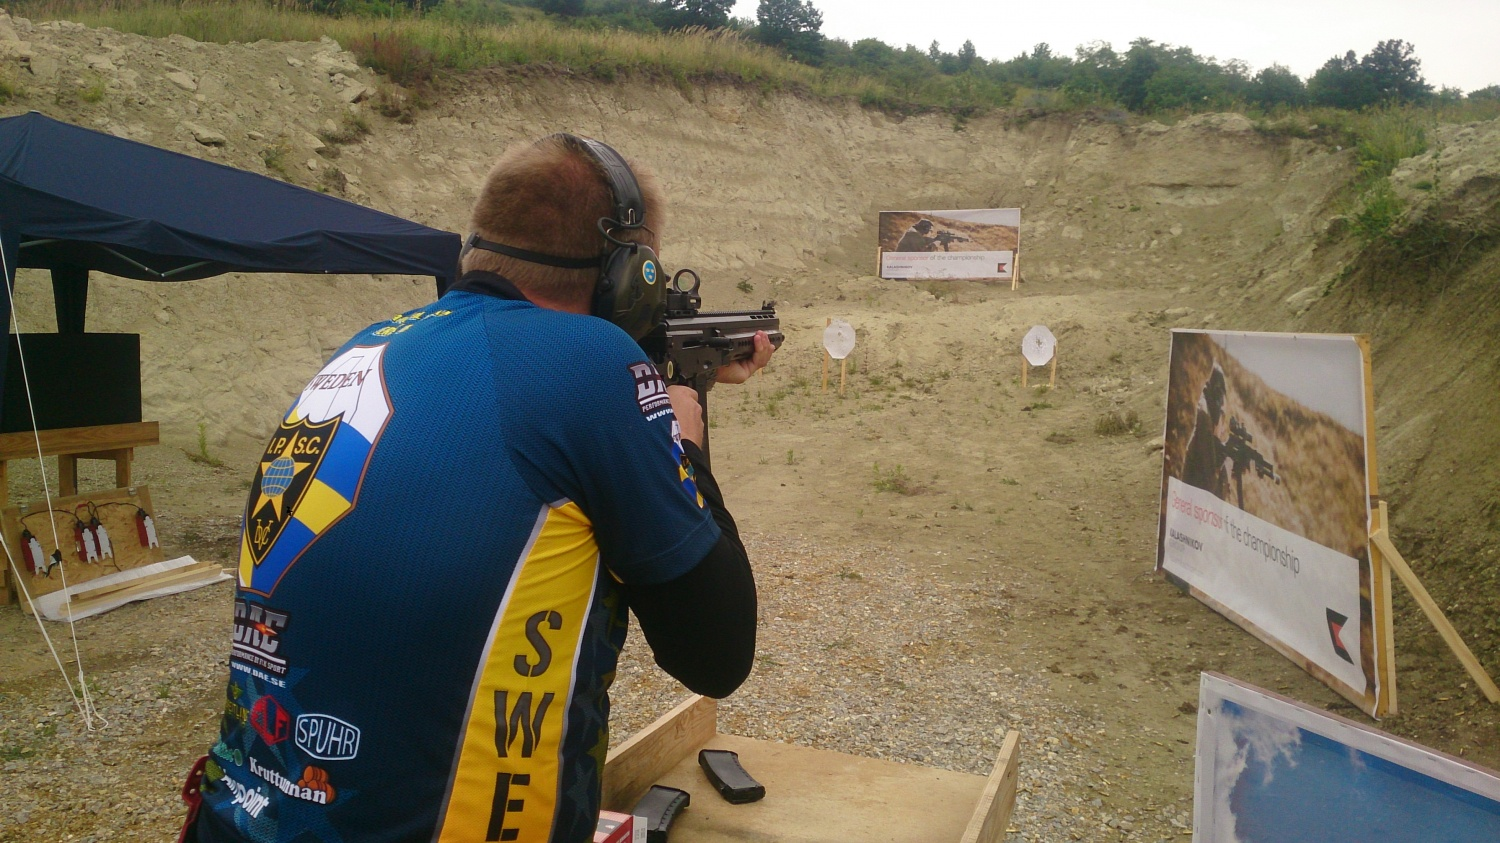 Eric B, the competitor from Sweden, shoots AK-15 prototype in the test-fire bay